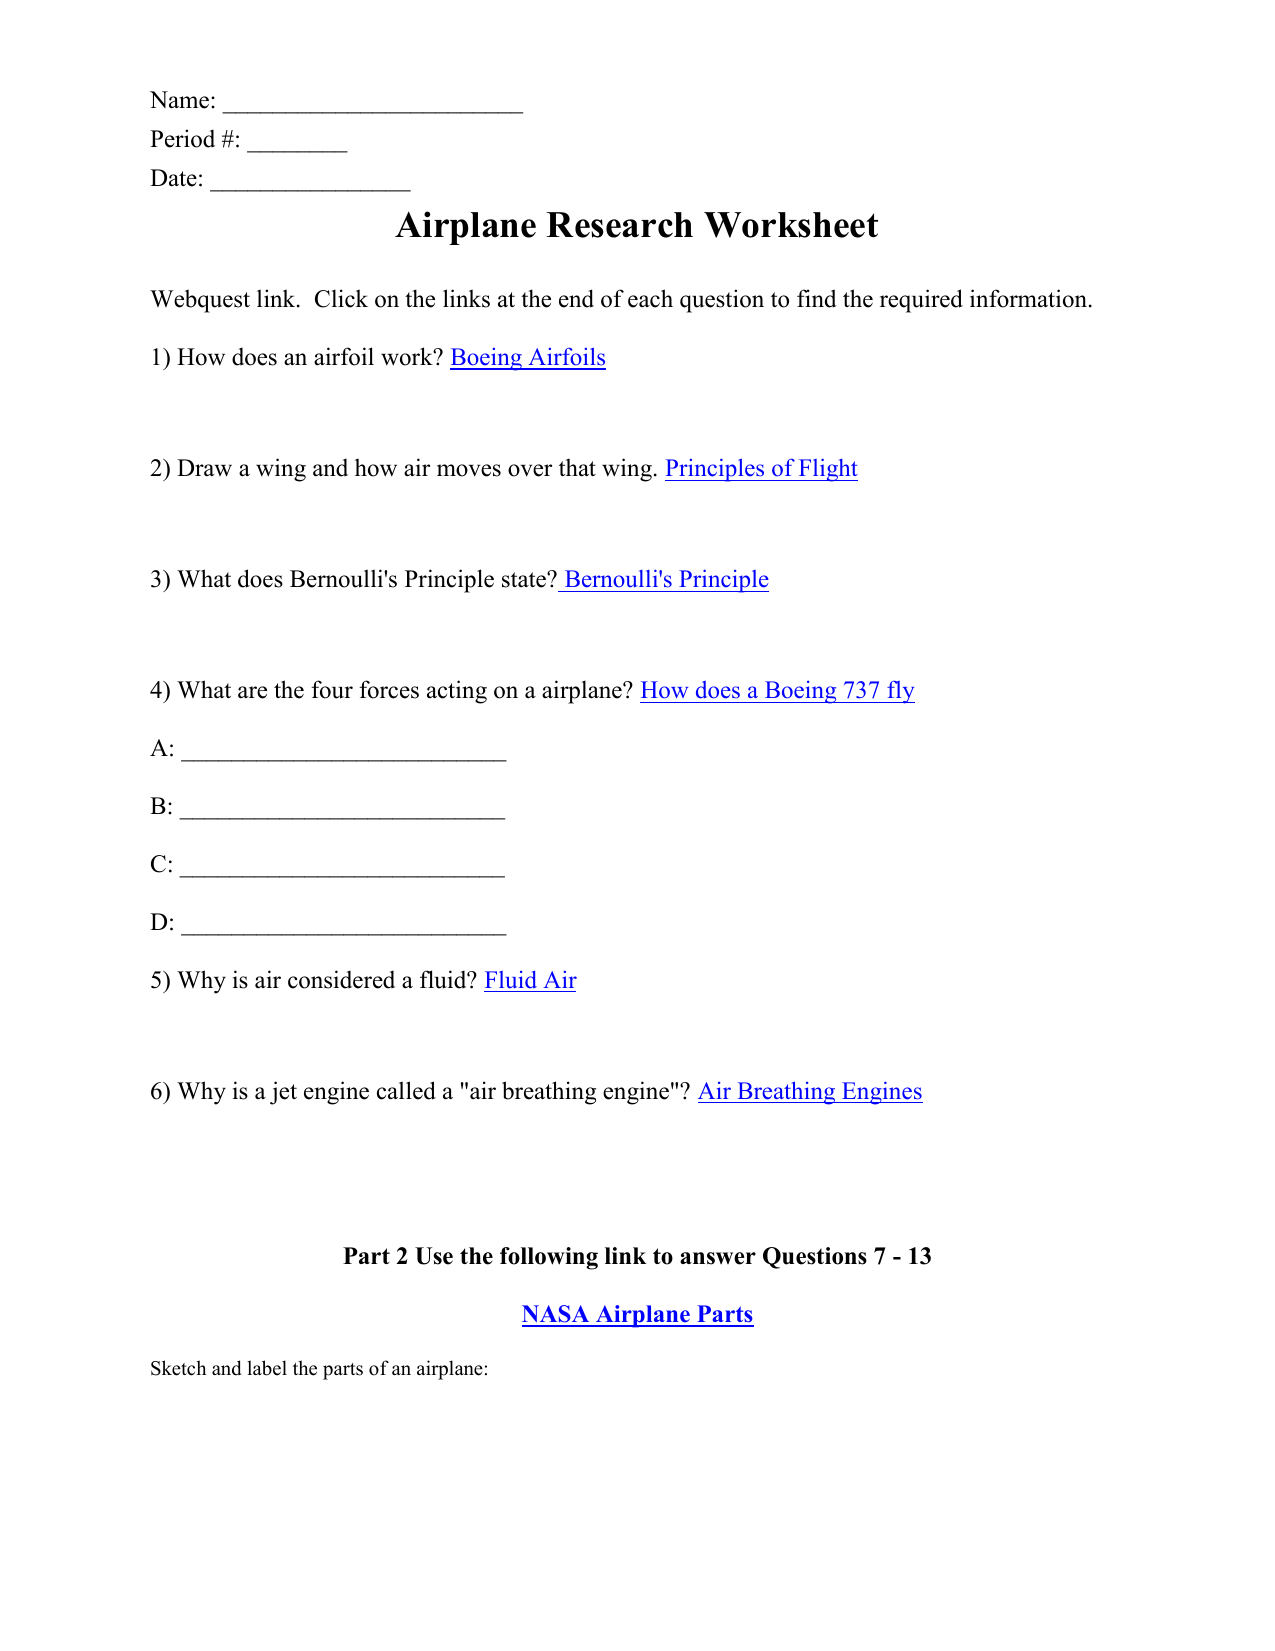 Airplane Research Worksheet Answers